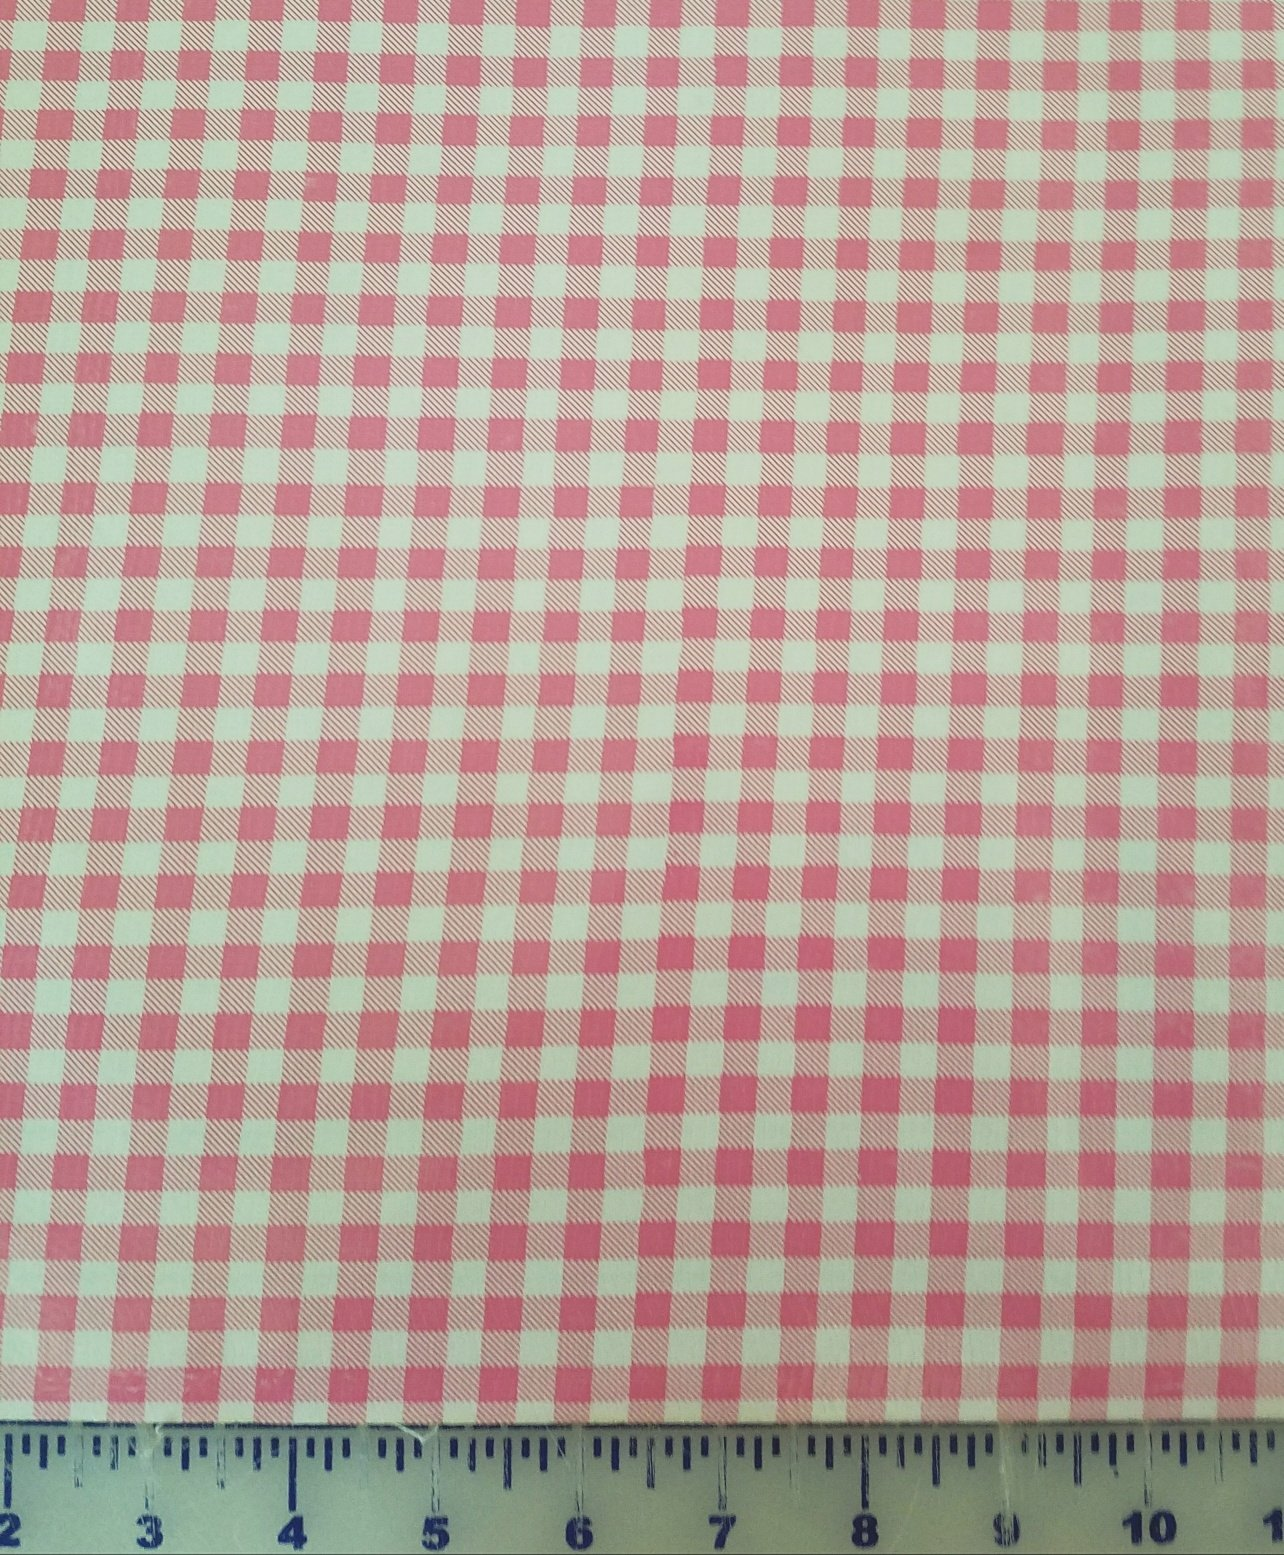 R123 Oilcloth 48 wide Pink Gingham